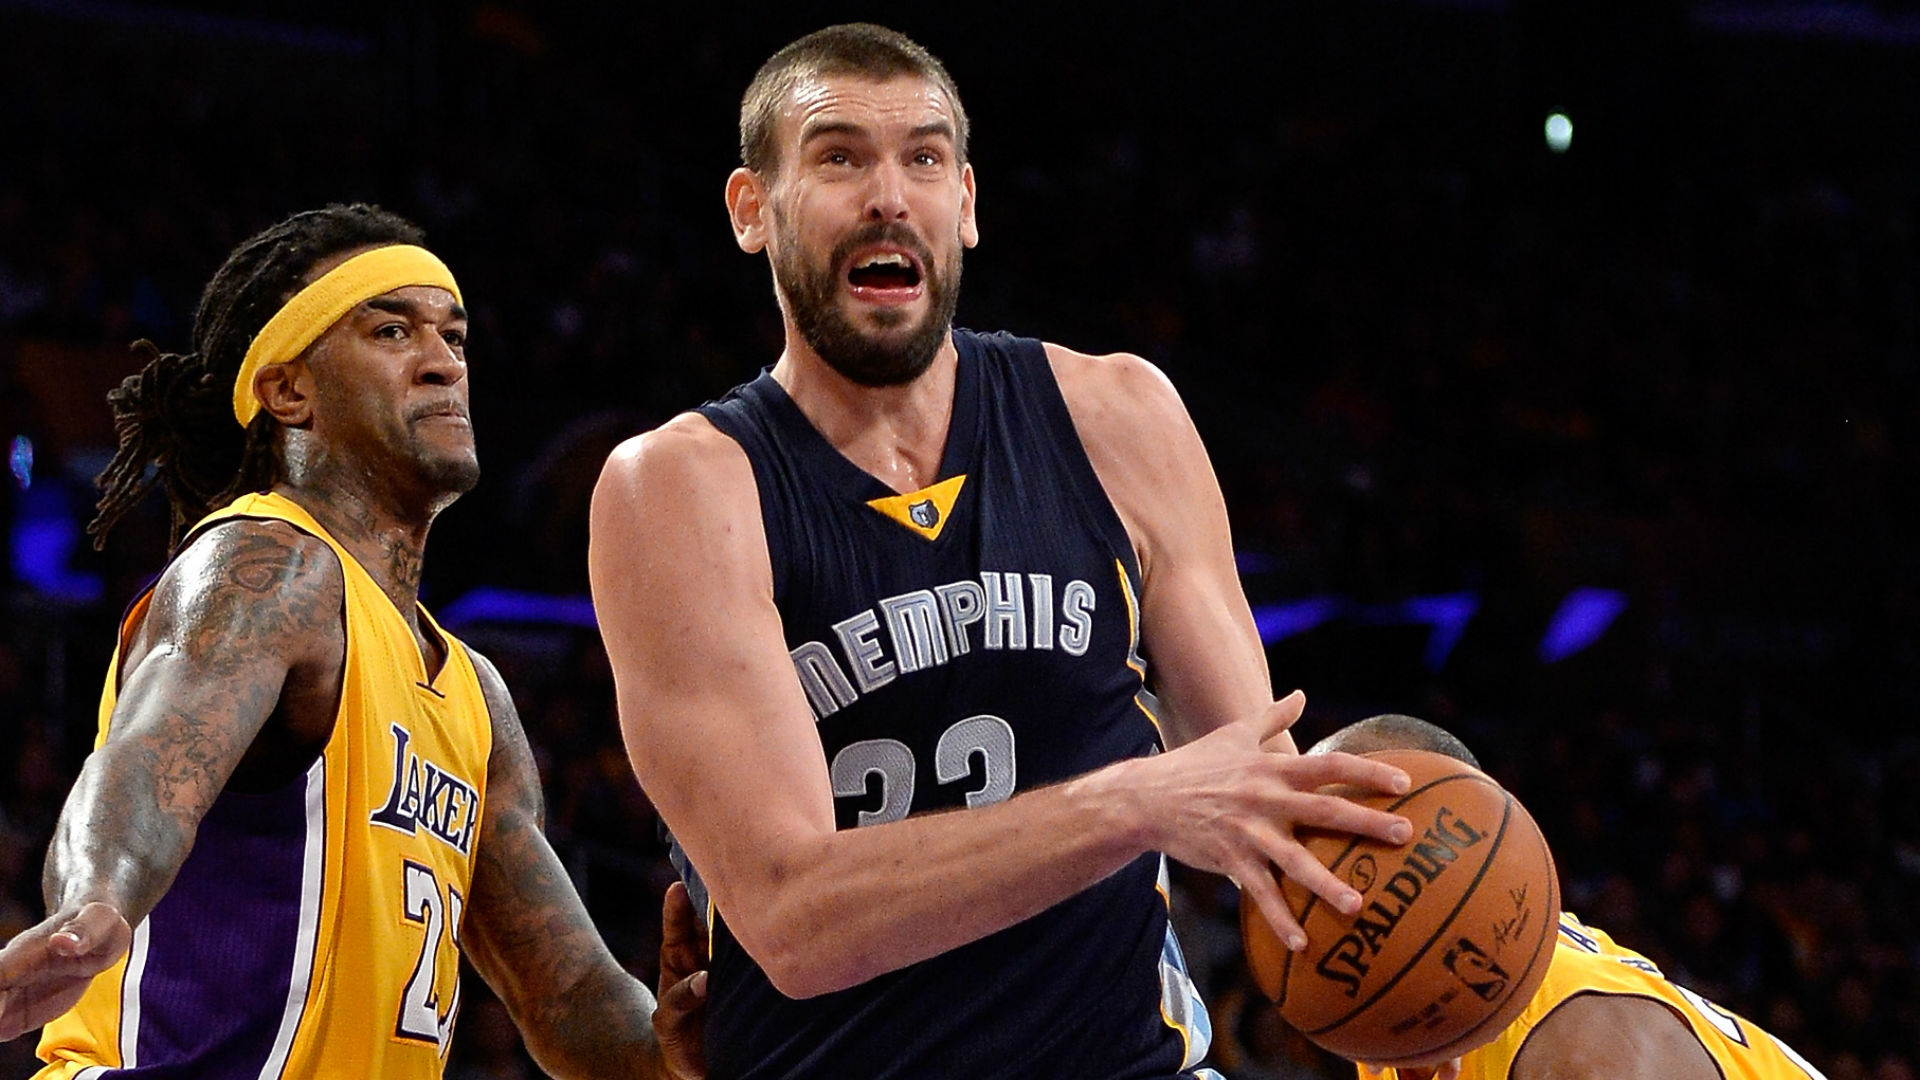 AccuScore NBA pick - Mavs, Grizz star in potential playoff preview